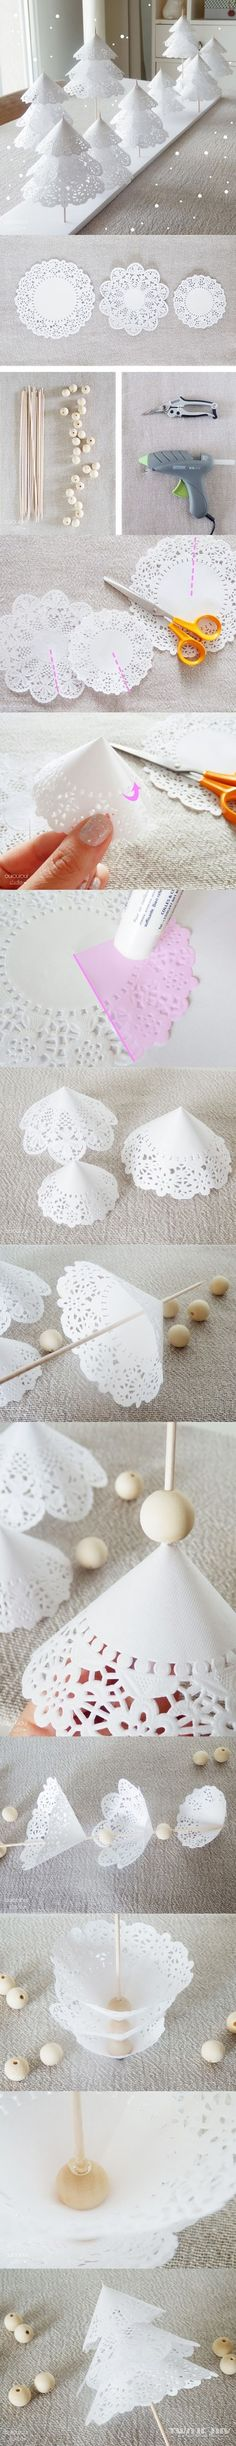 DIY Paper Doily Christmas Trees via thewowstyle http://ouiouiouistudio.blogspot.co.uk/2013/12/diy-une-foret-de-sapins-en-napperons-de.html #DIY #Christmas_Trees